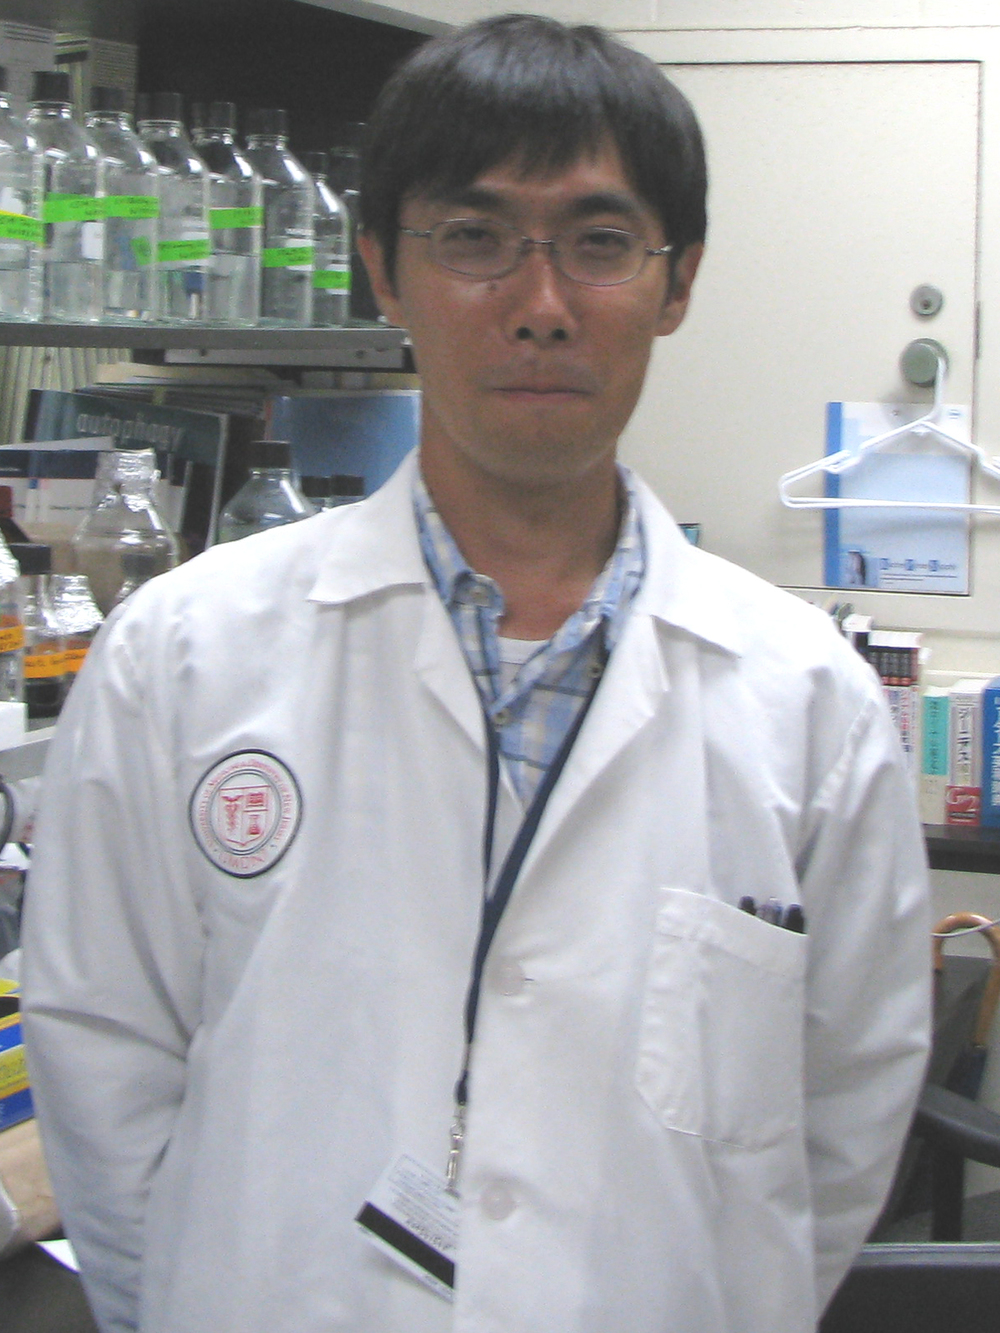 Yoshiya Monden, MD, PhD Email Yoshiya 2010-2012 Postdoctoral Fellow, UMDNJ 2007-2010 Clinical Fellow, Hiroshima Red Cross Hospital & Atomic-bomb Survivors Hospital, Japan 2003-2007 Ph.D., Kyushu University 2001-2003 Medical Resident, Kyushu University Hospital 1995-2001 M.D., Kyushu University, Japan Research Interests: Molecular mechanism of autophagy in regulating cardiac remodeling